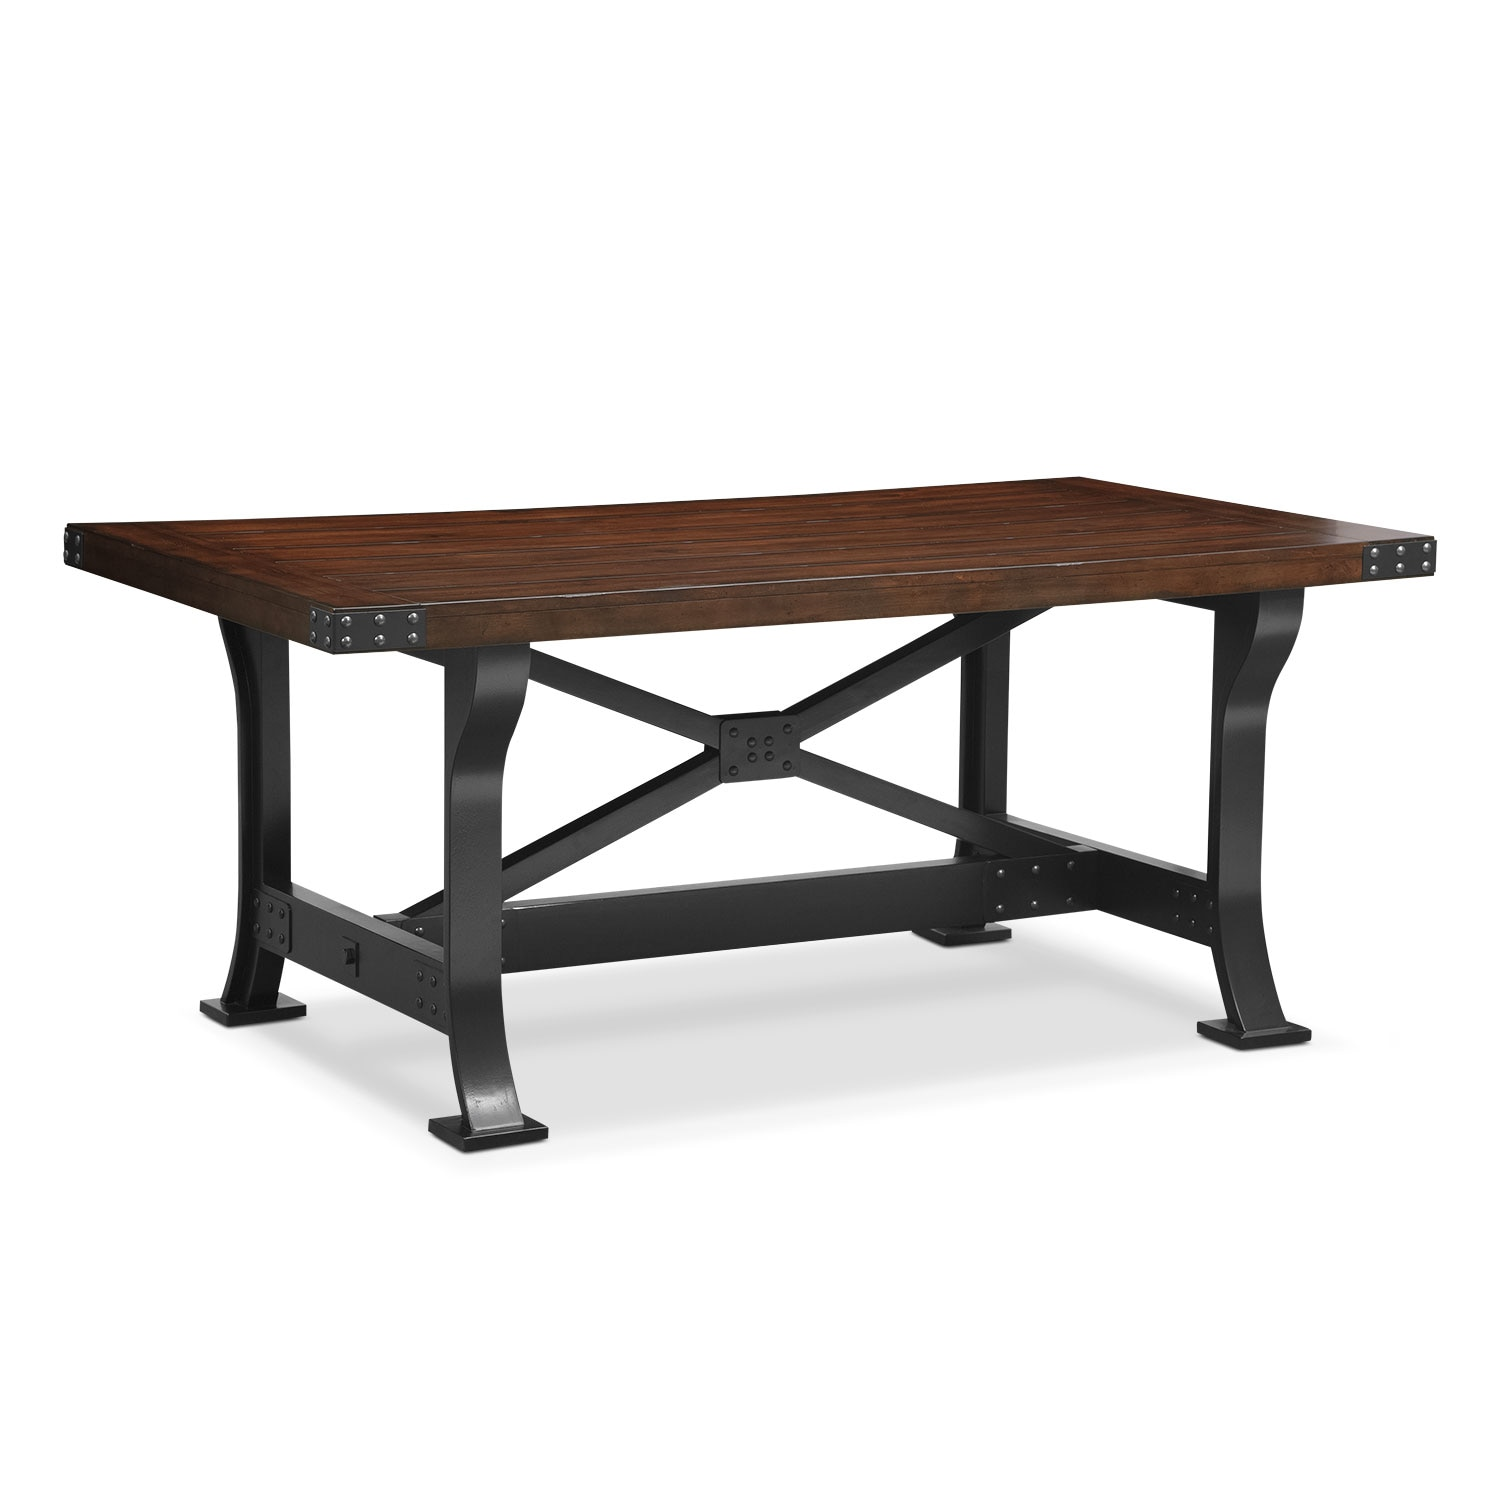 Newcastle standard height dining table american signature furniture - Height dining room table ...